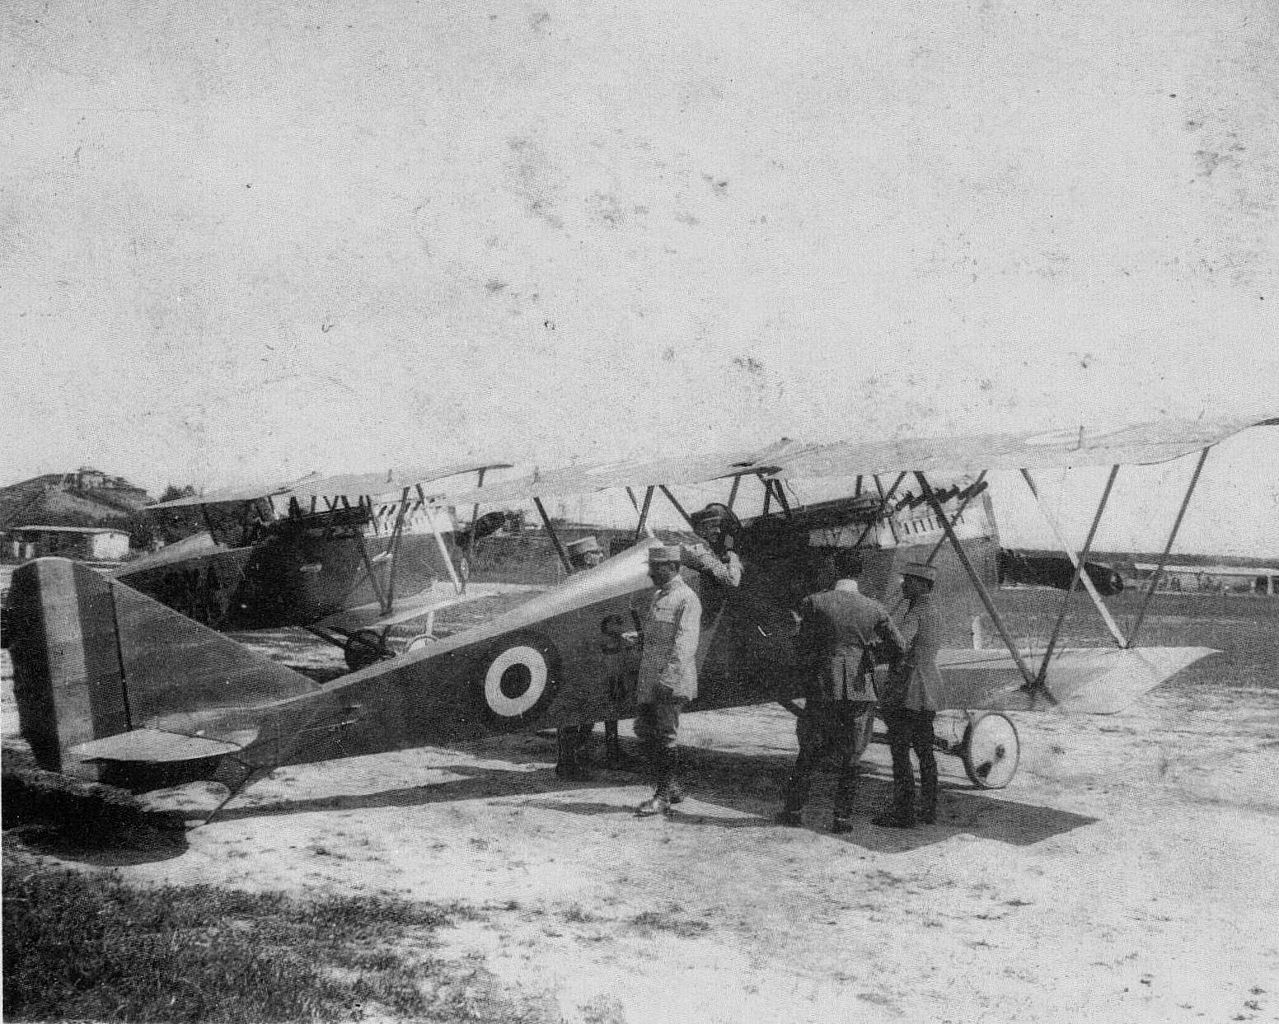 How Italian Caproni and S.V.A. First World War aircraft performed the first real military airlift in the history of aviation